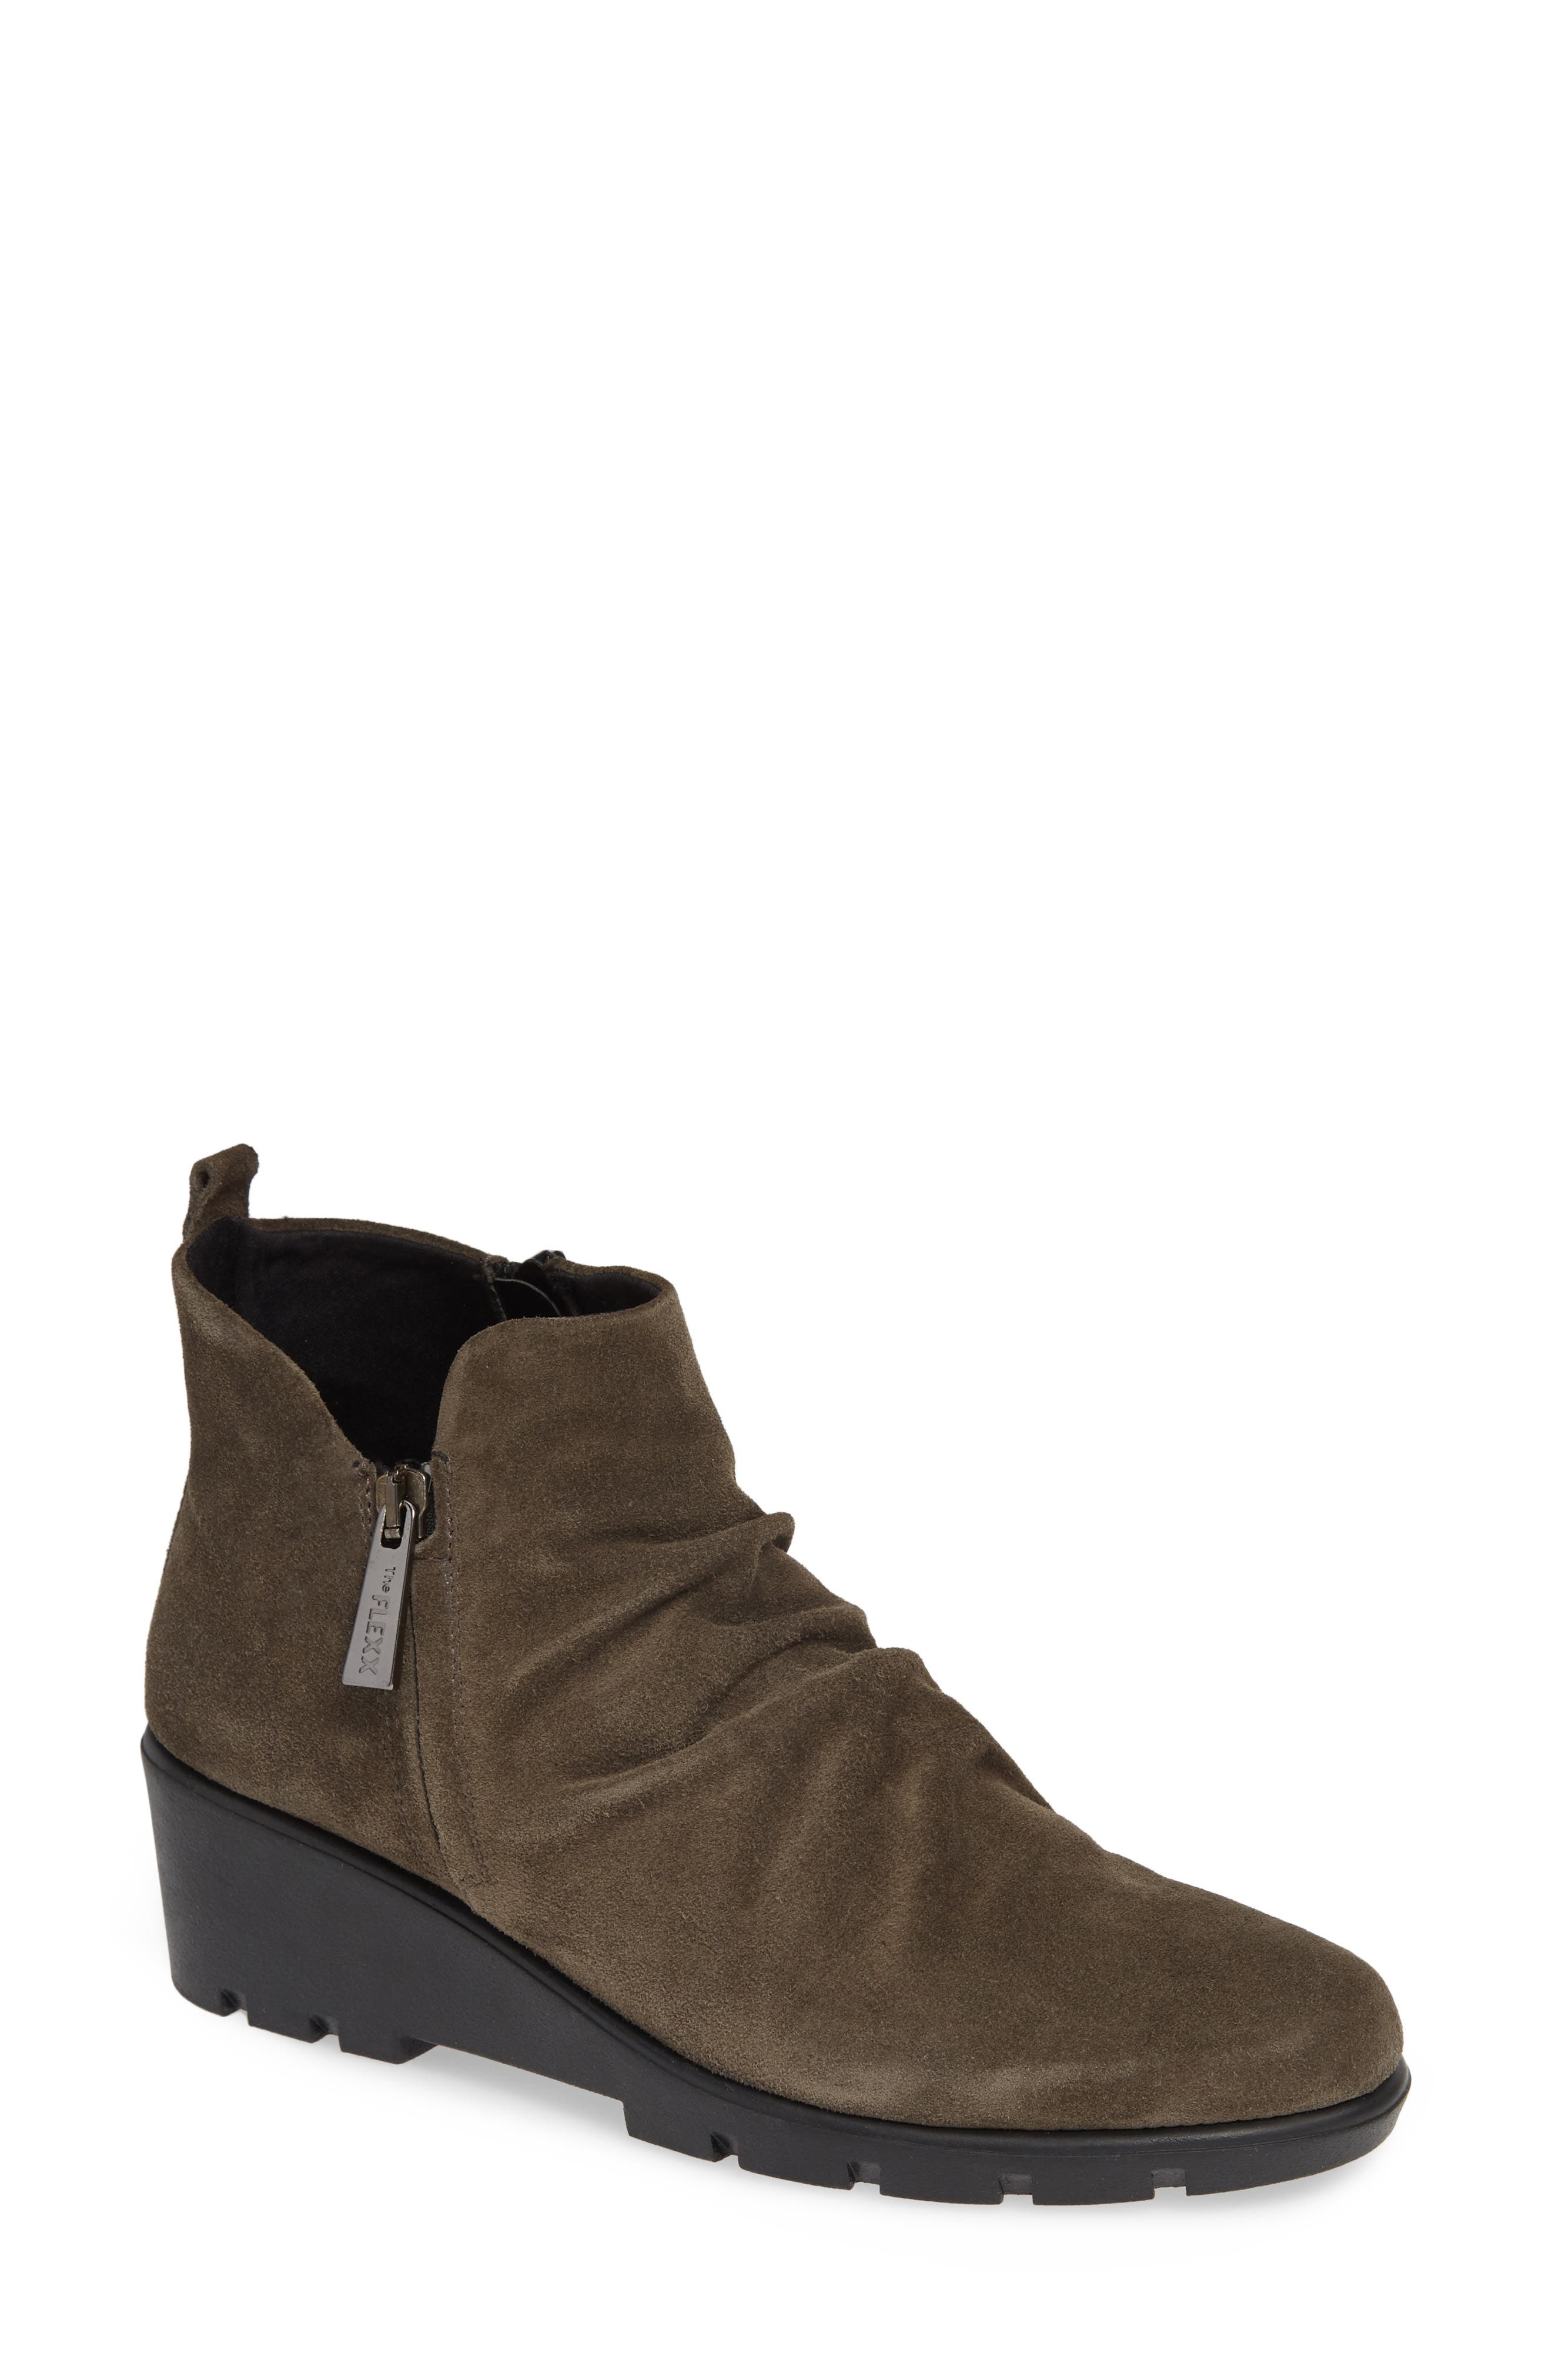 THE FLEXX Slingshot Ankle Bootie, Main, color, BROWN SUEDE